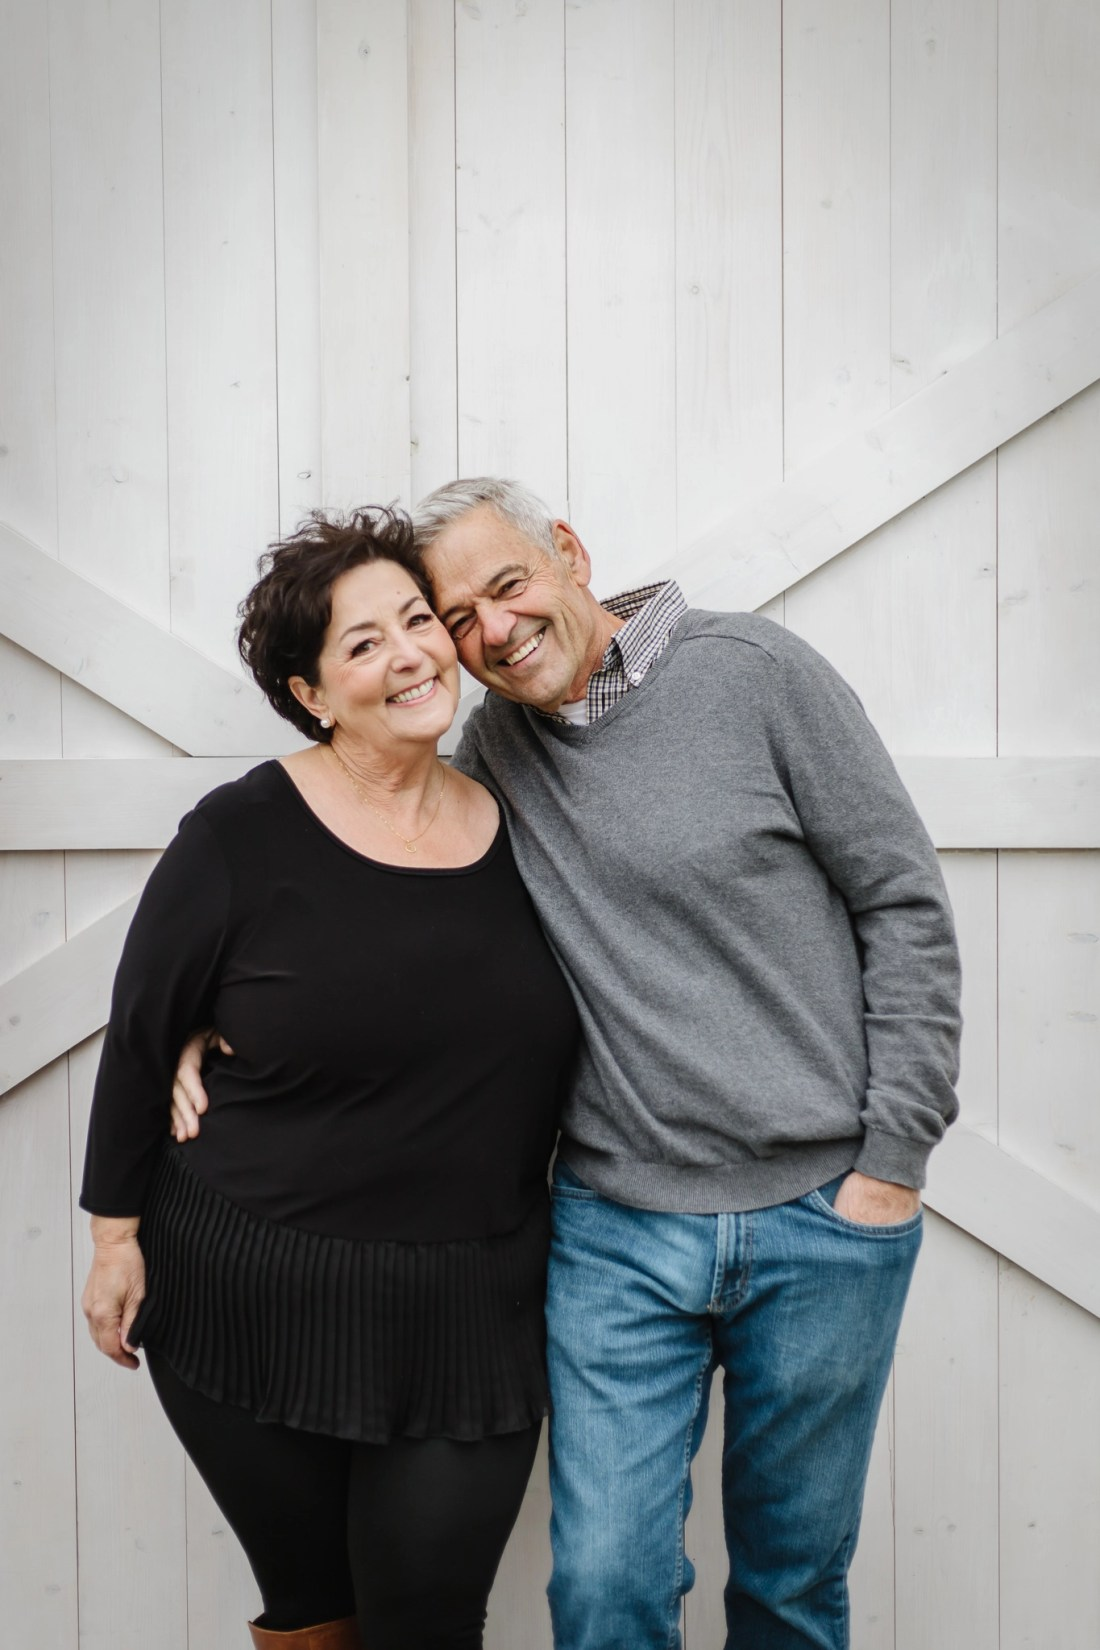 The secret to a great marriage - advice from a happily married couple after 45 years